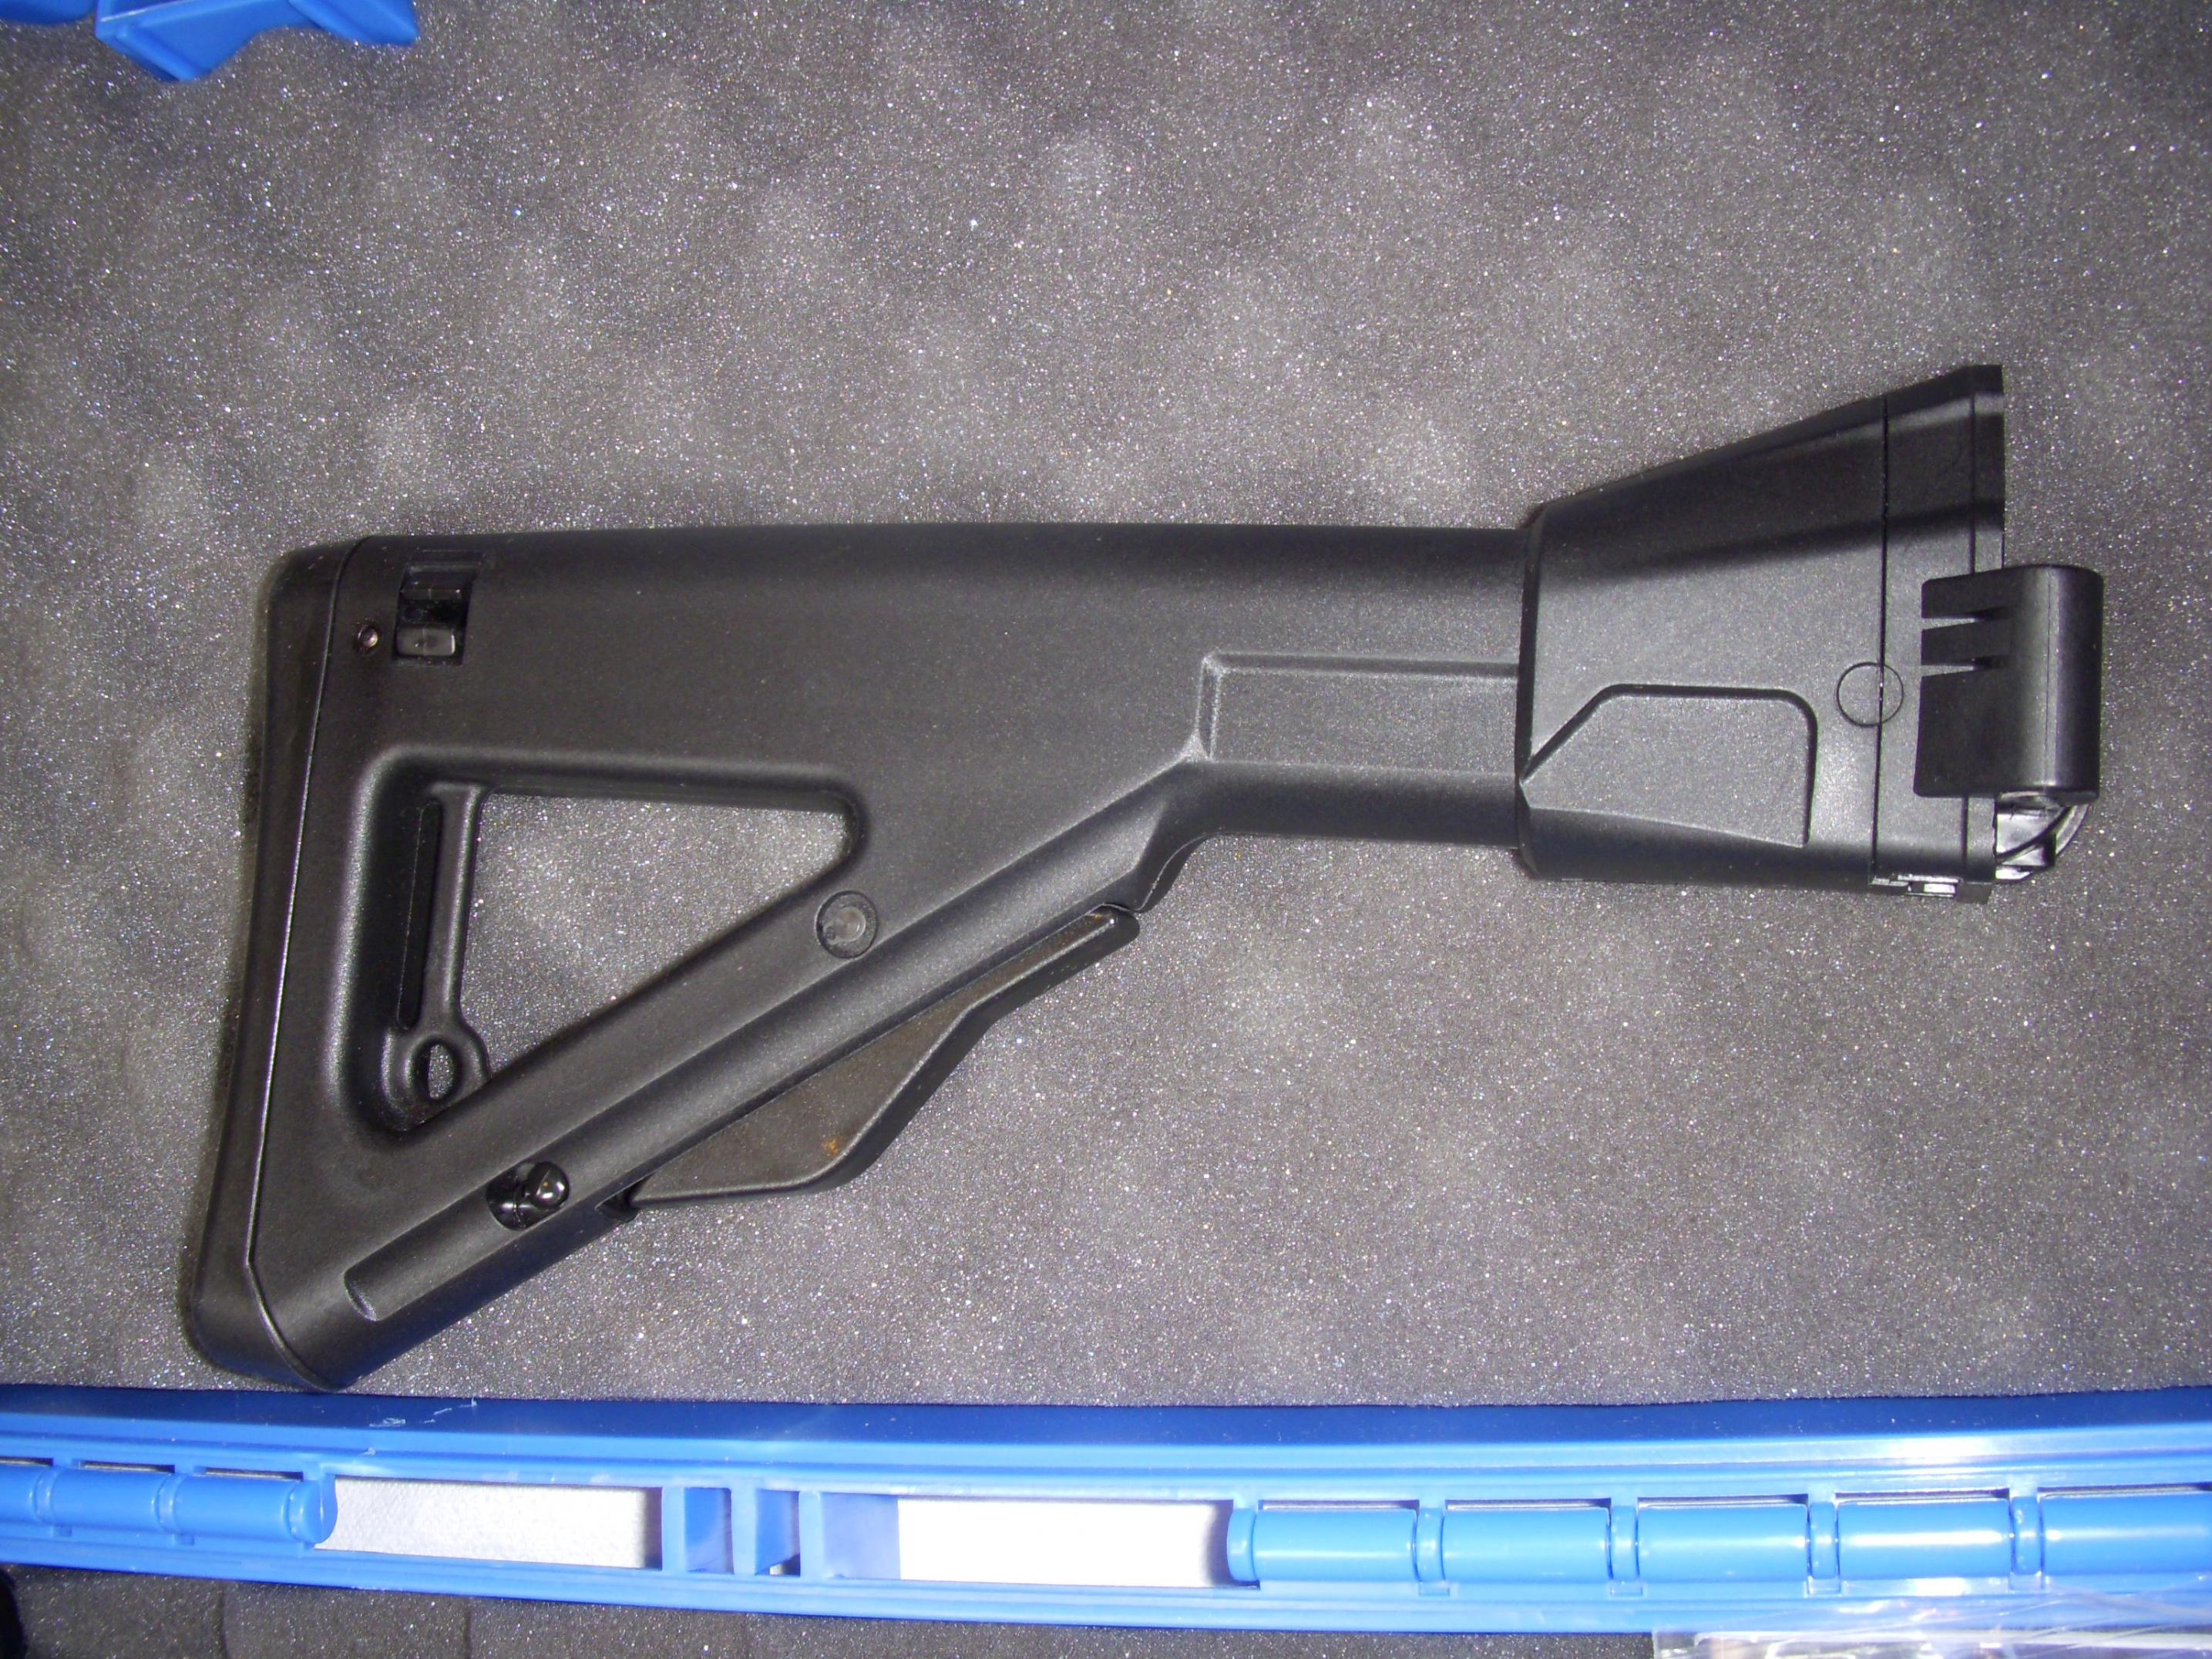 HK 416 .22 v. Smith & Wesson M & P 15 .22????-dscn1422.jpg